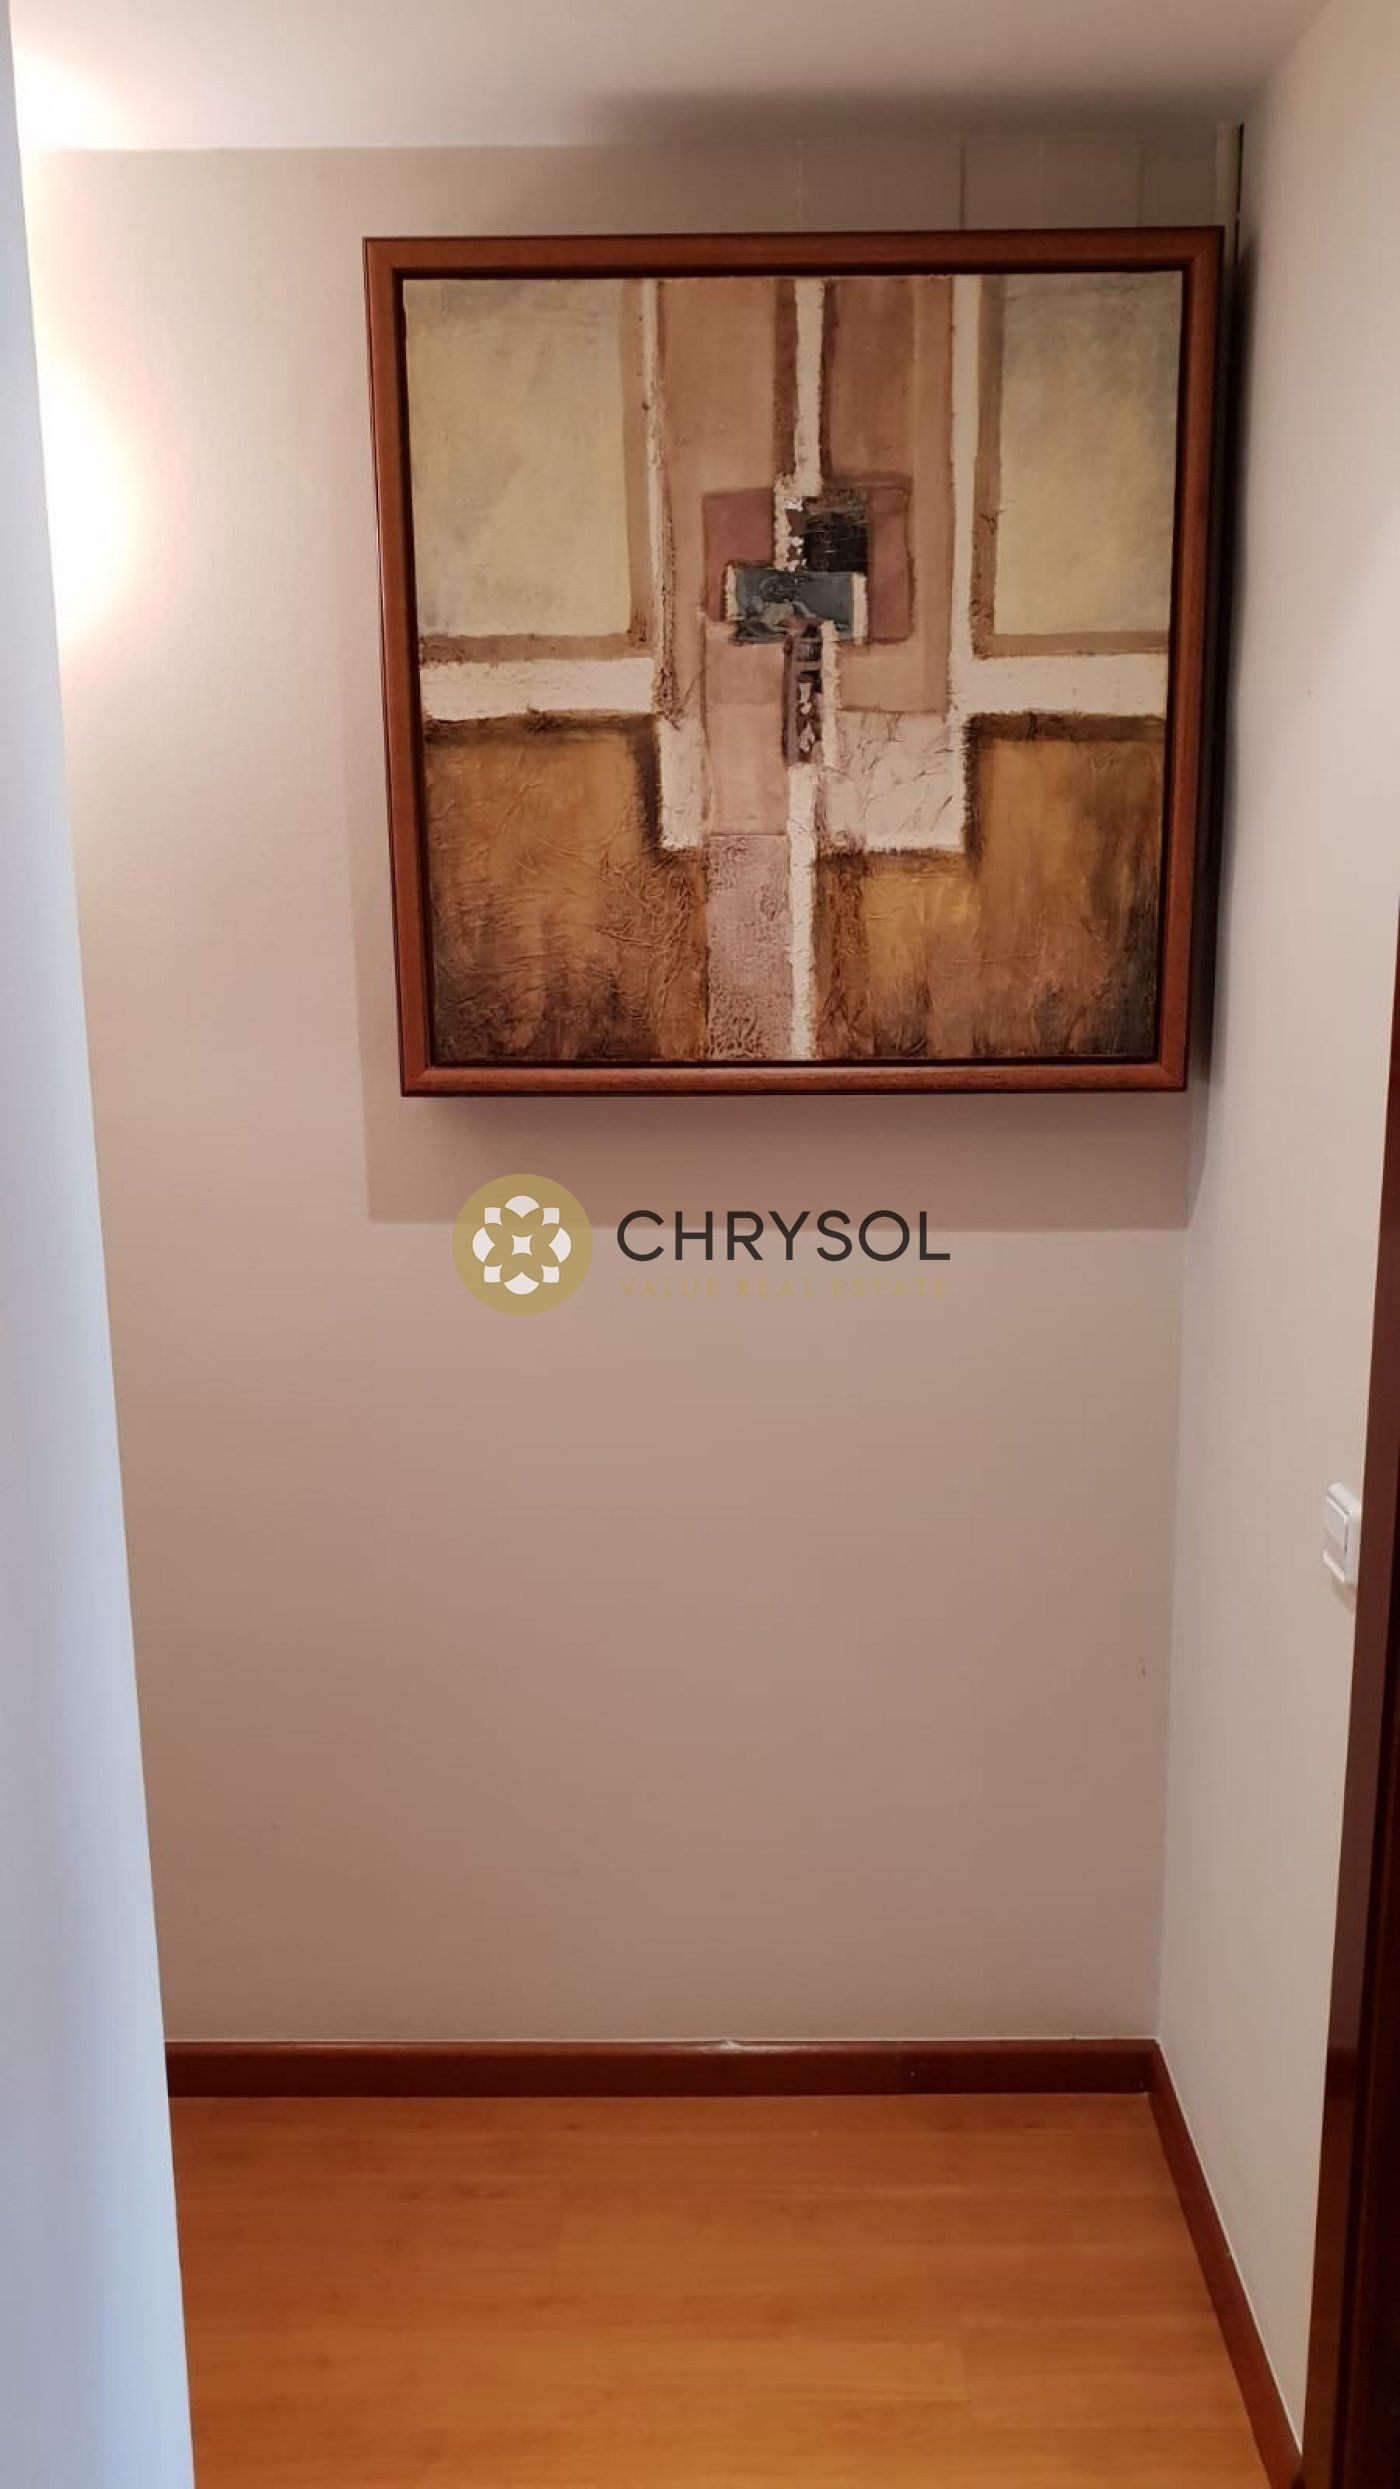 Fotogalería - 12 - Chrysol Value